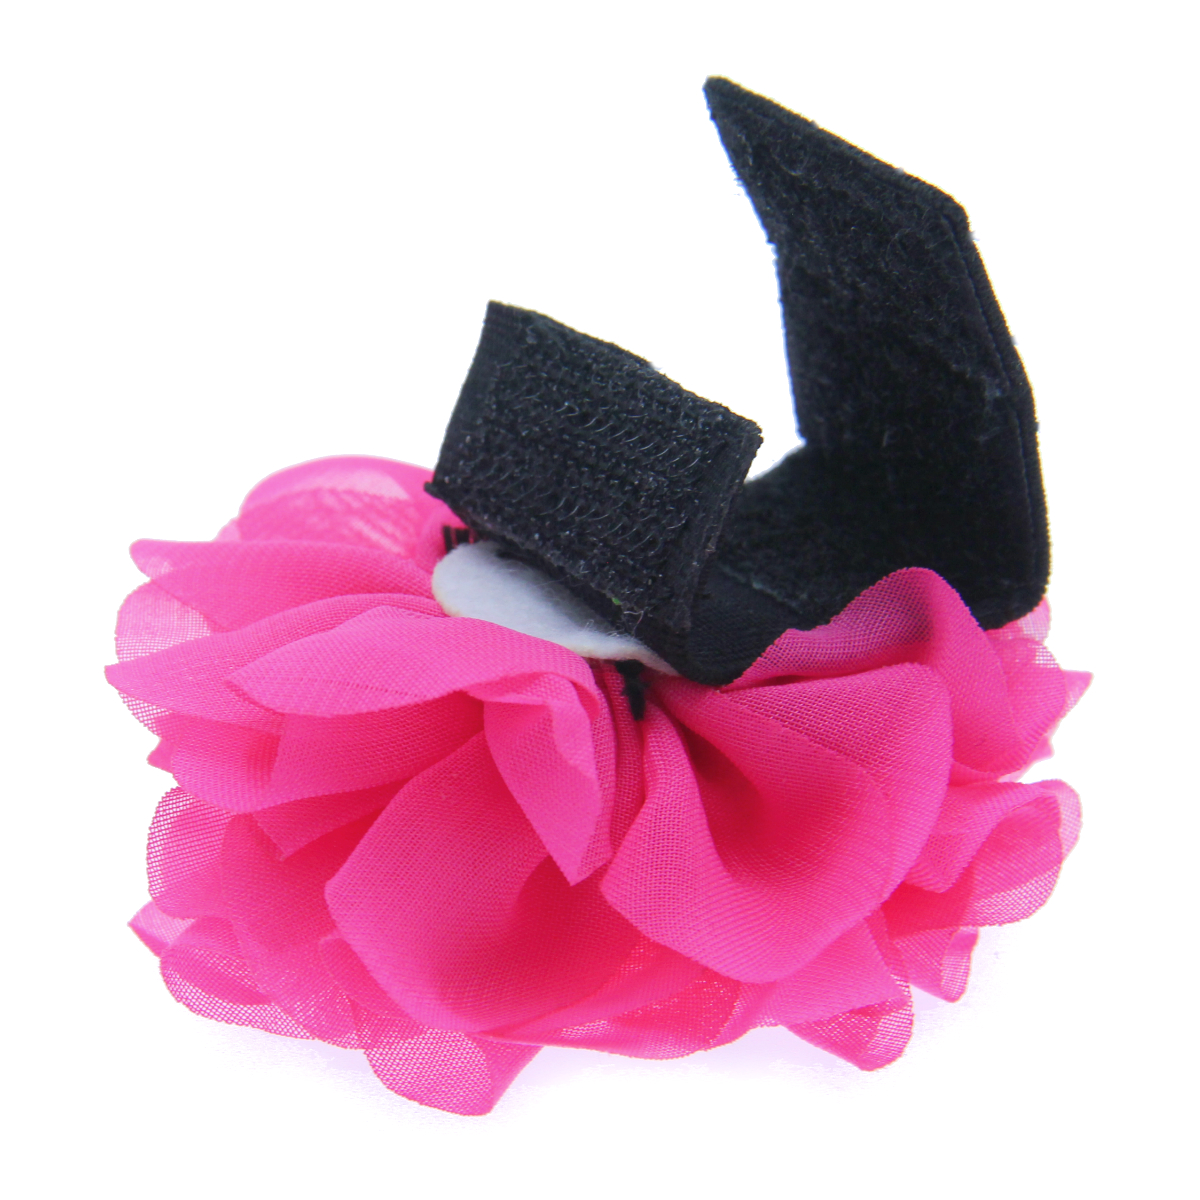 Easybow flower dog collar attachment by dogo hot pink flower easybow flower dog collar attachment by dogo hot pink flower with same day shipping baxterboo dhlflorist Choice Image